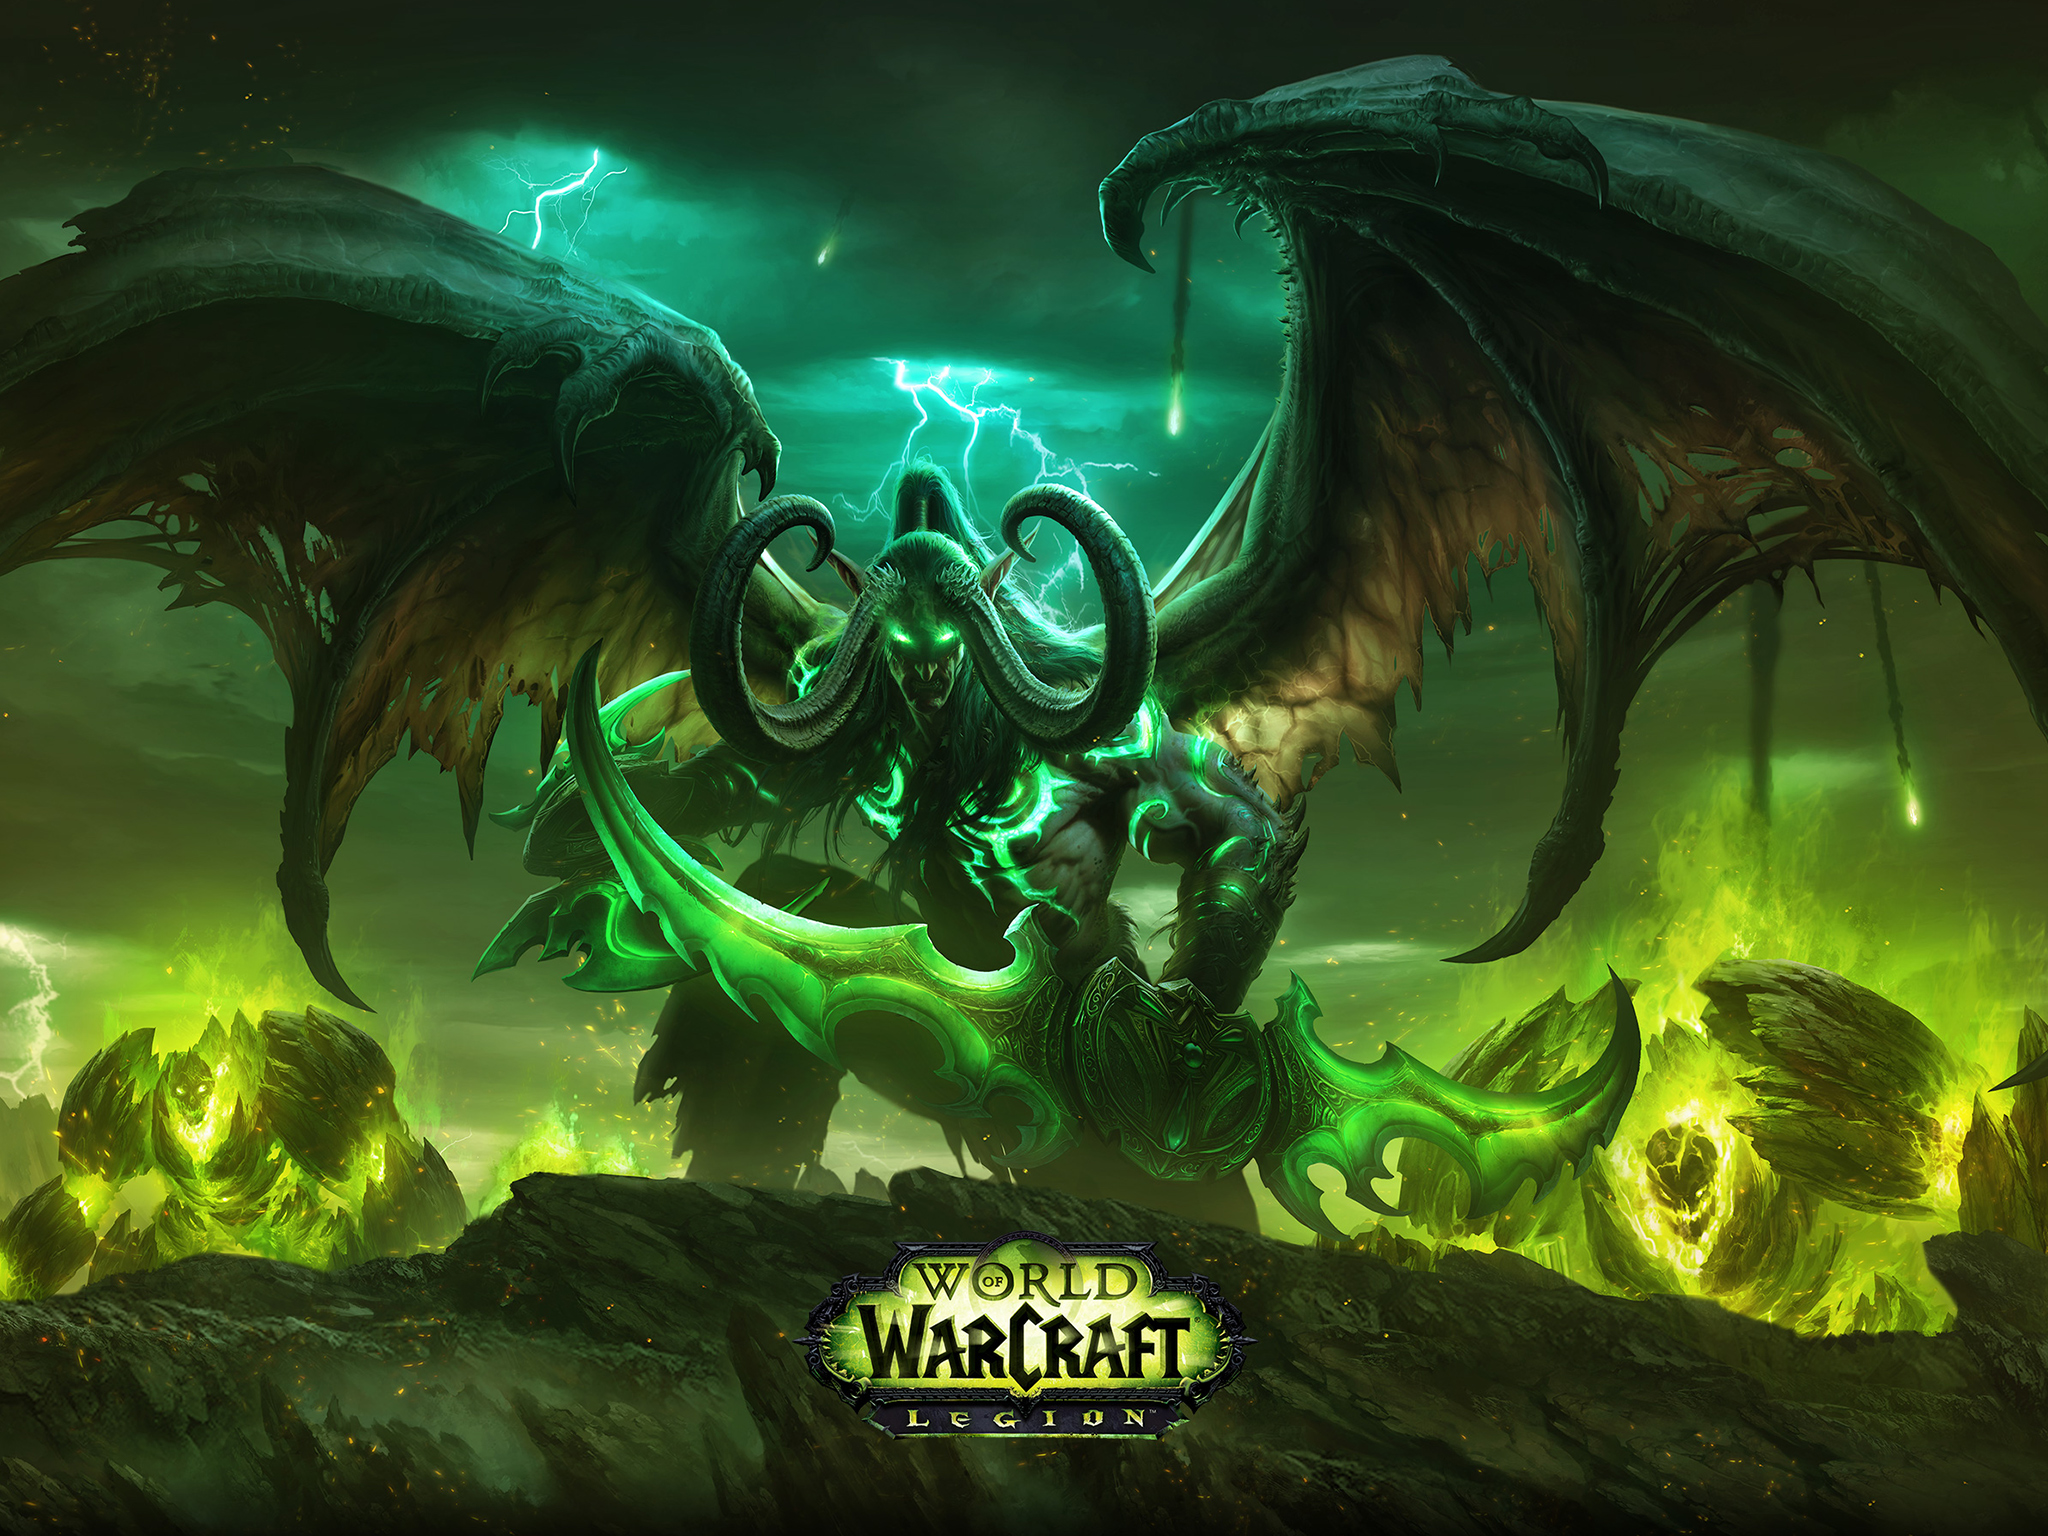 Latest World of Warcraft Expansion, Legion revealed